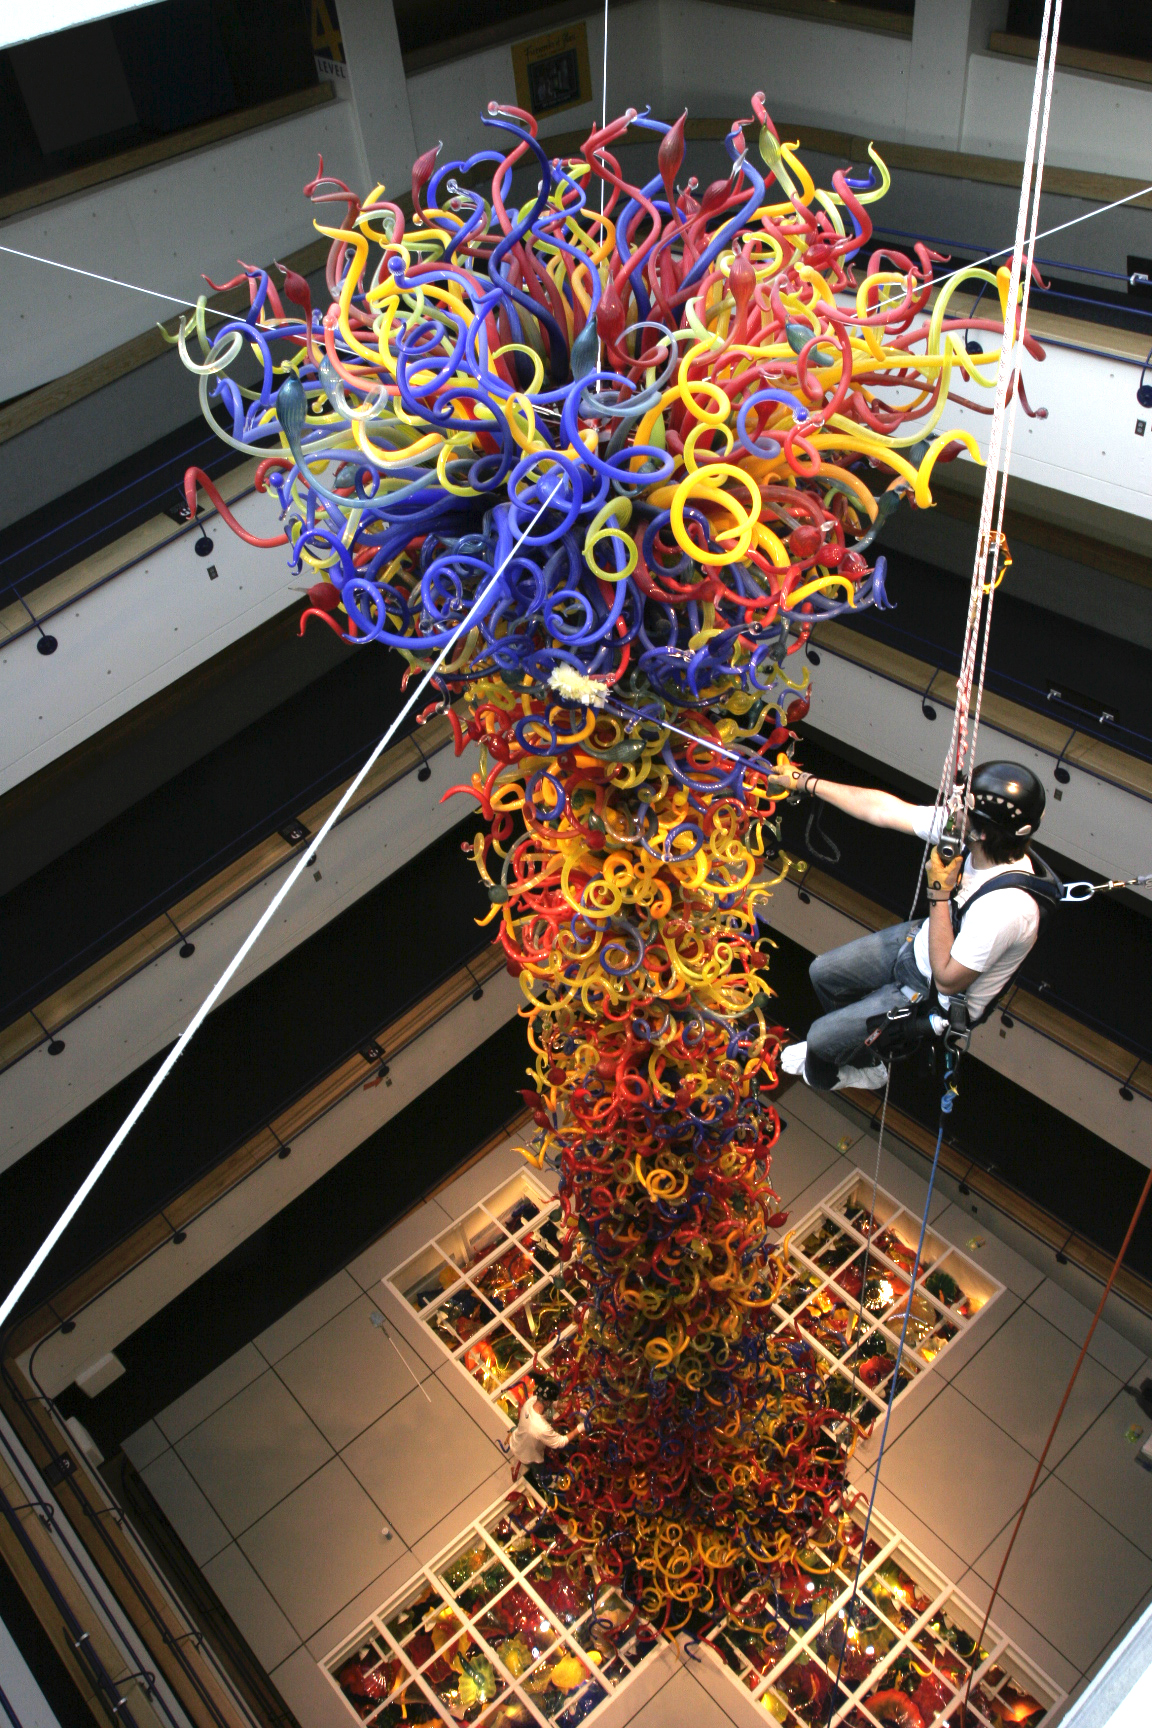 Dale Chihuly, <i>Fireworks of Glass</i>, 2006, Indianapolis Children's Museum, Indianapolis, IN